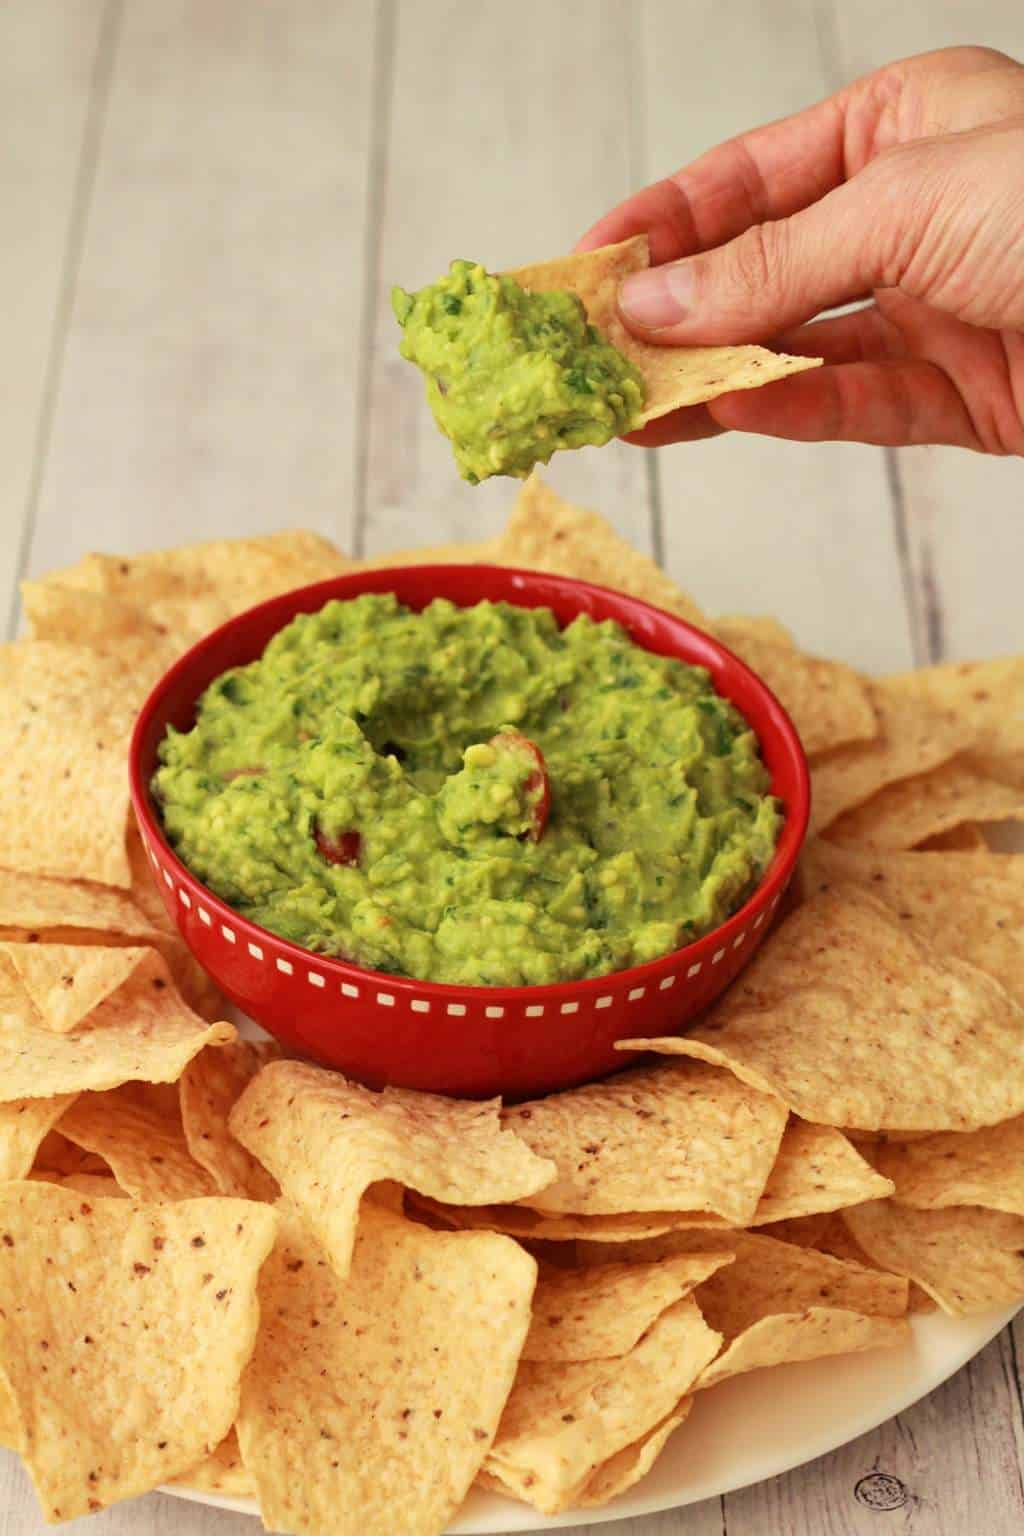 how to make guacamole simple